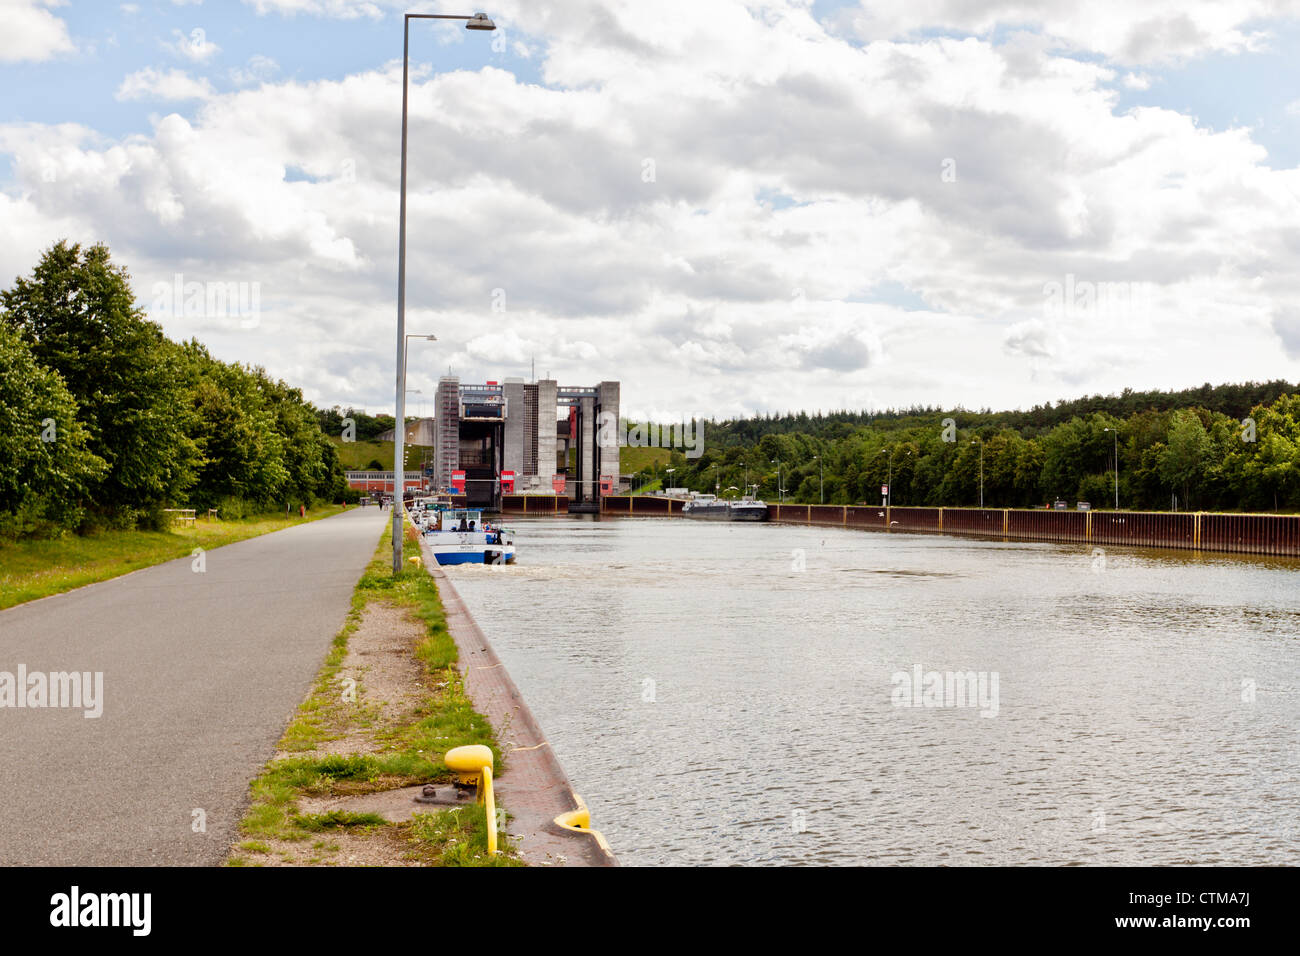 Twin ship lift at Scharnebeck on the Elbe Lateral Canal - Stock Image